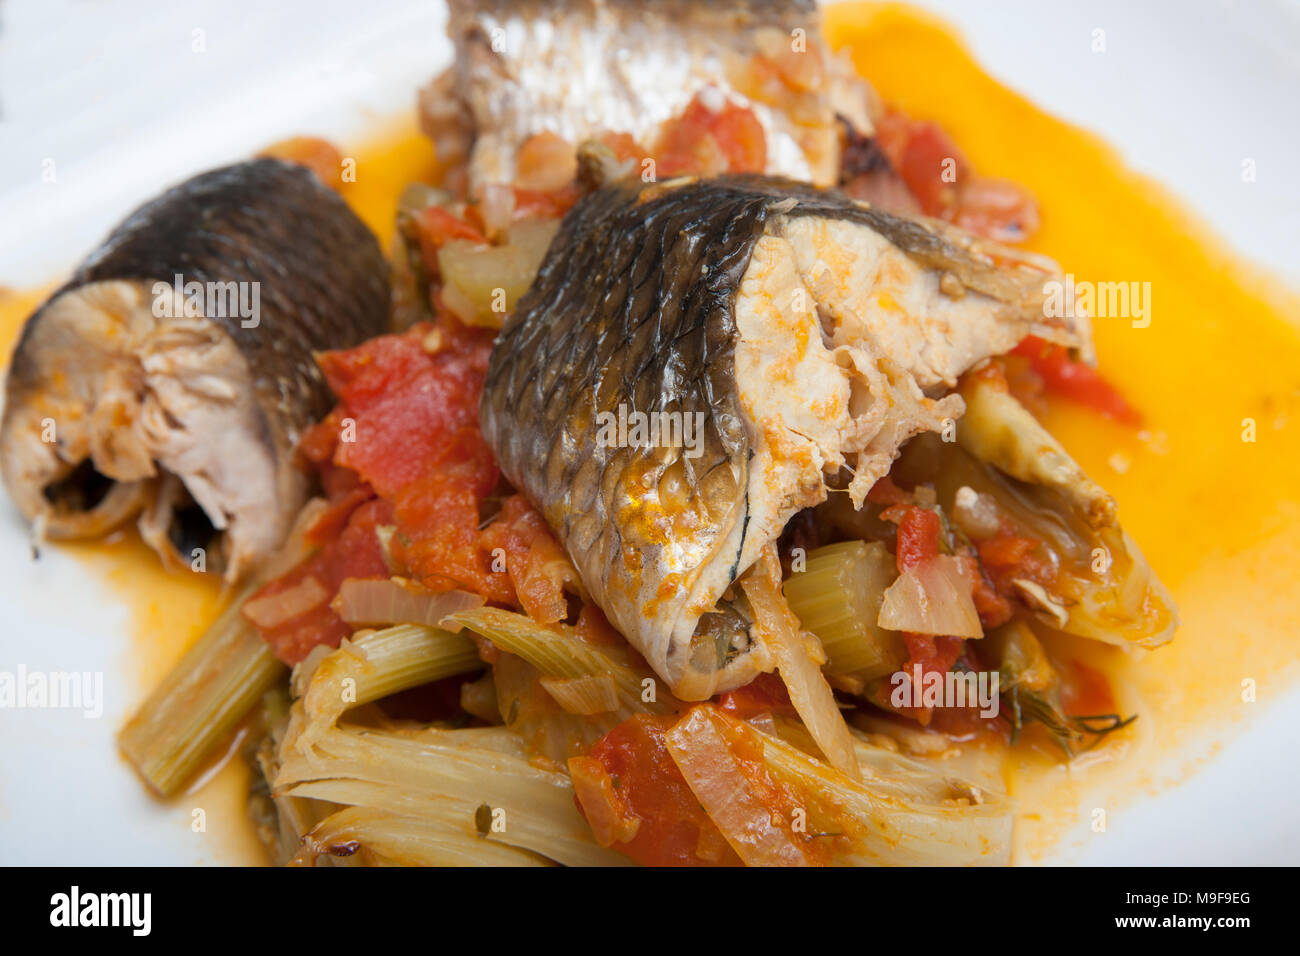 Cutlets of thin lipped mullet, Liza ramada, in a fish stew with tomatoes, onions and fennel, Dorset UK - Stock Image